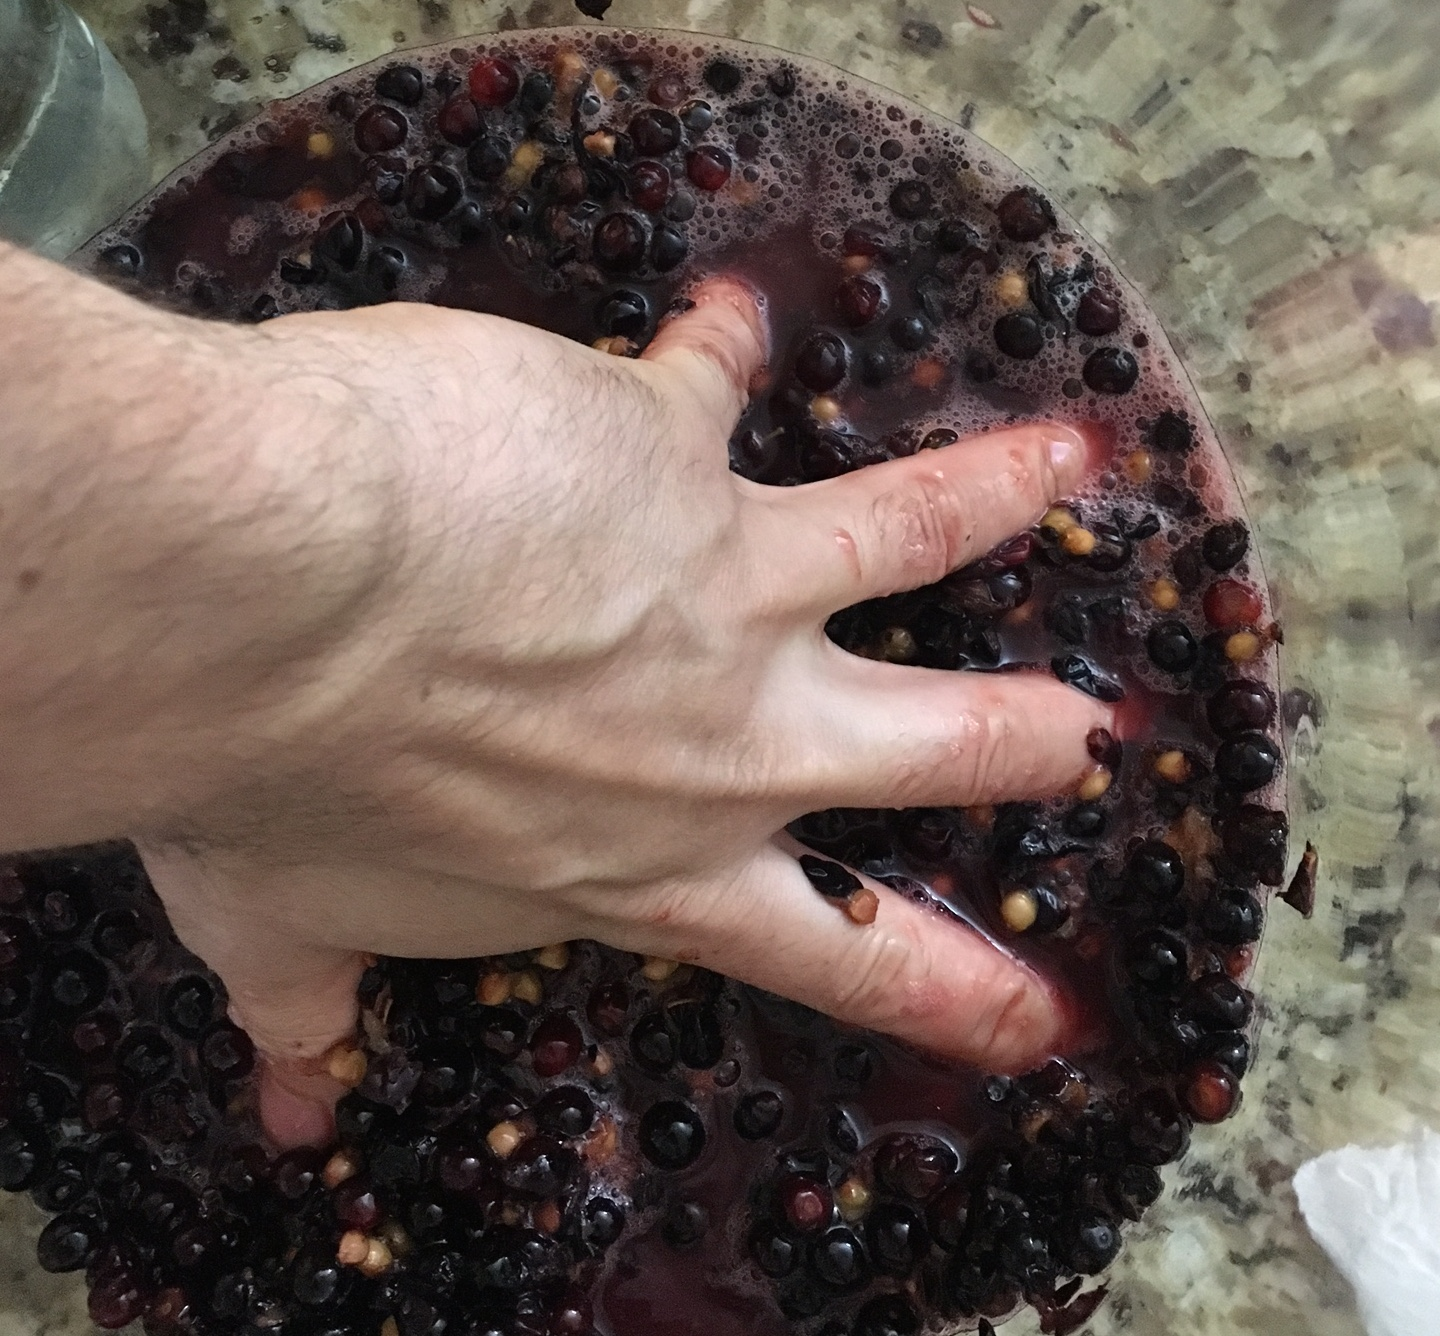 Mushing up the cherries during the first step to get them ready for fermentation. This is similar to stomping wine grapes. If you have enough cherries to stomp with your feet, we're very jealous of you.